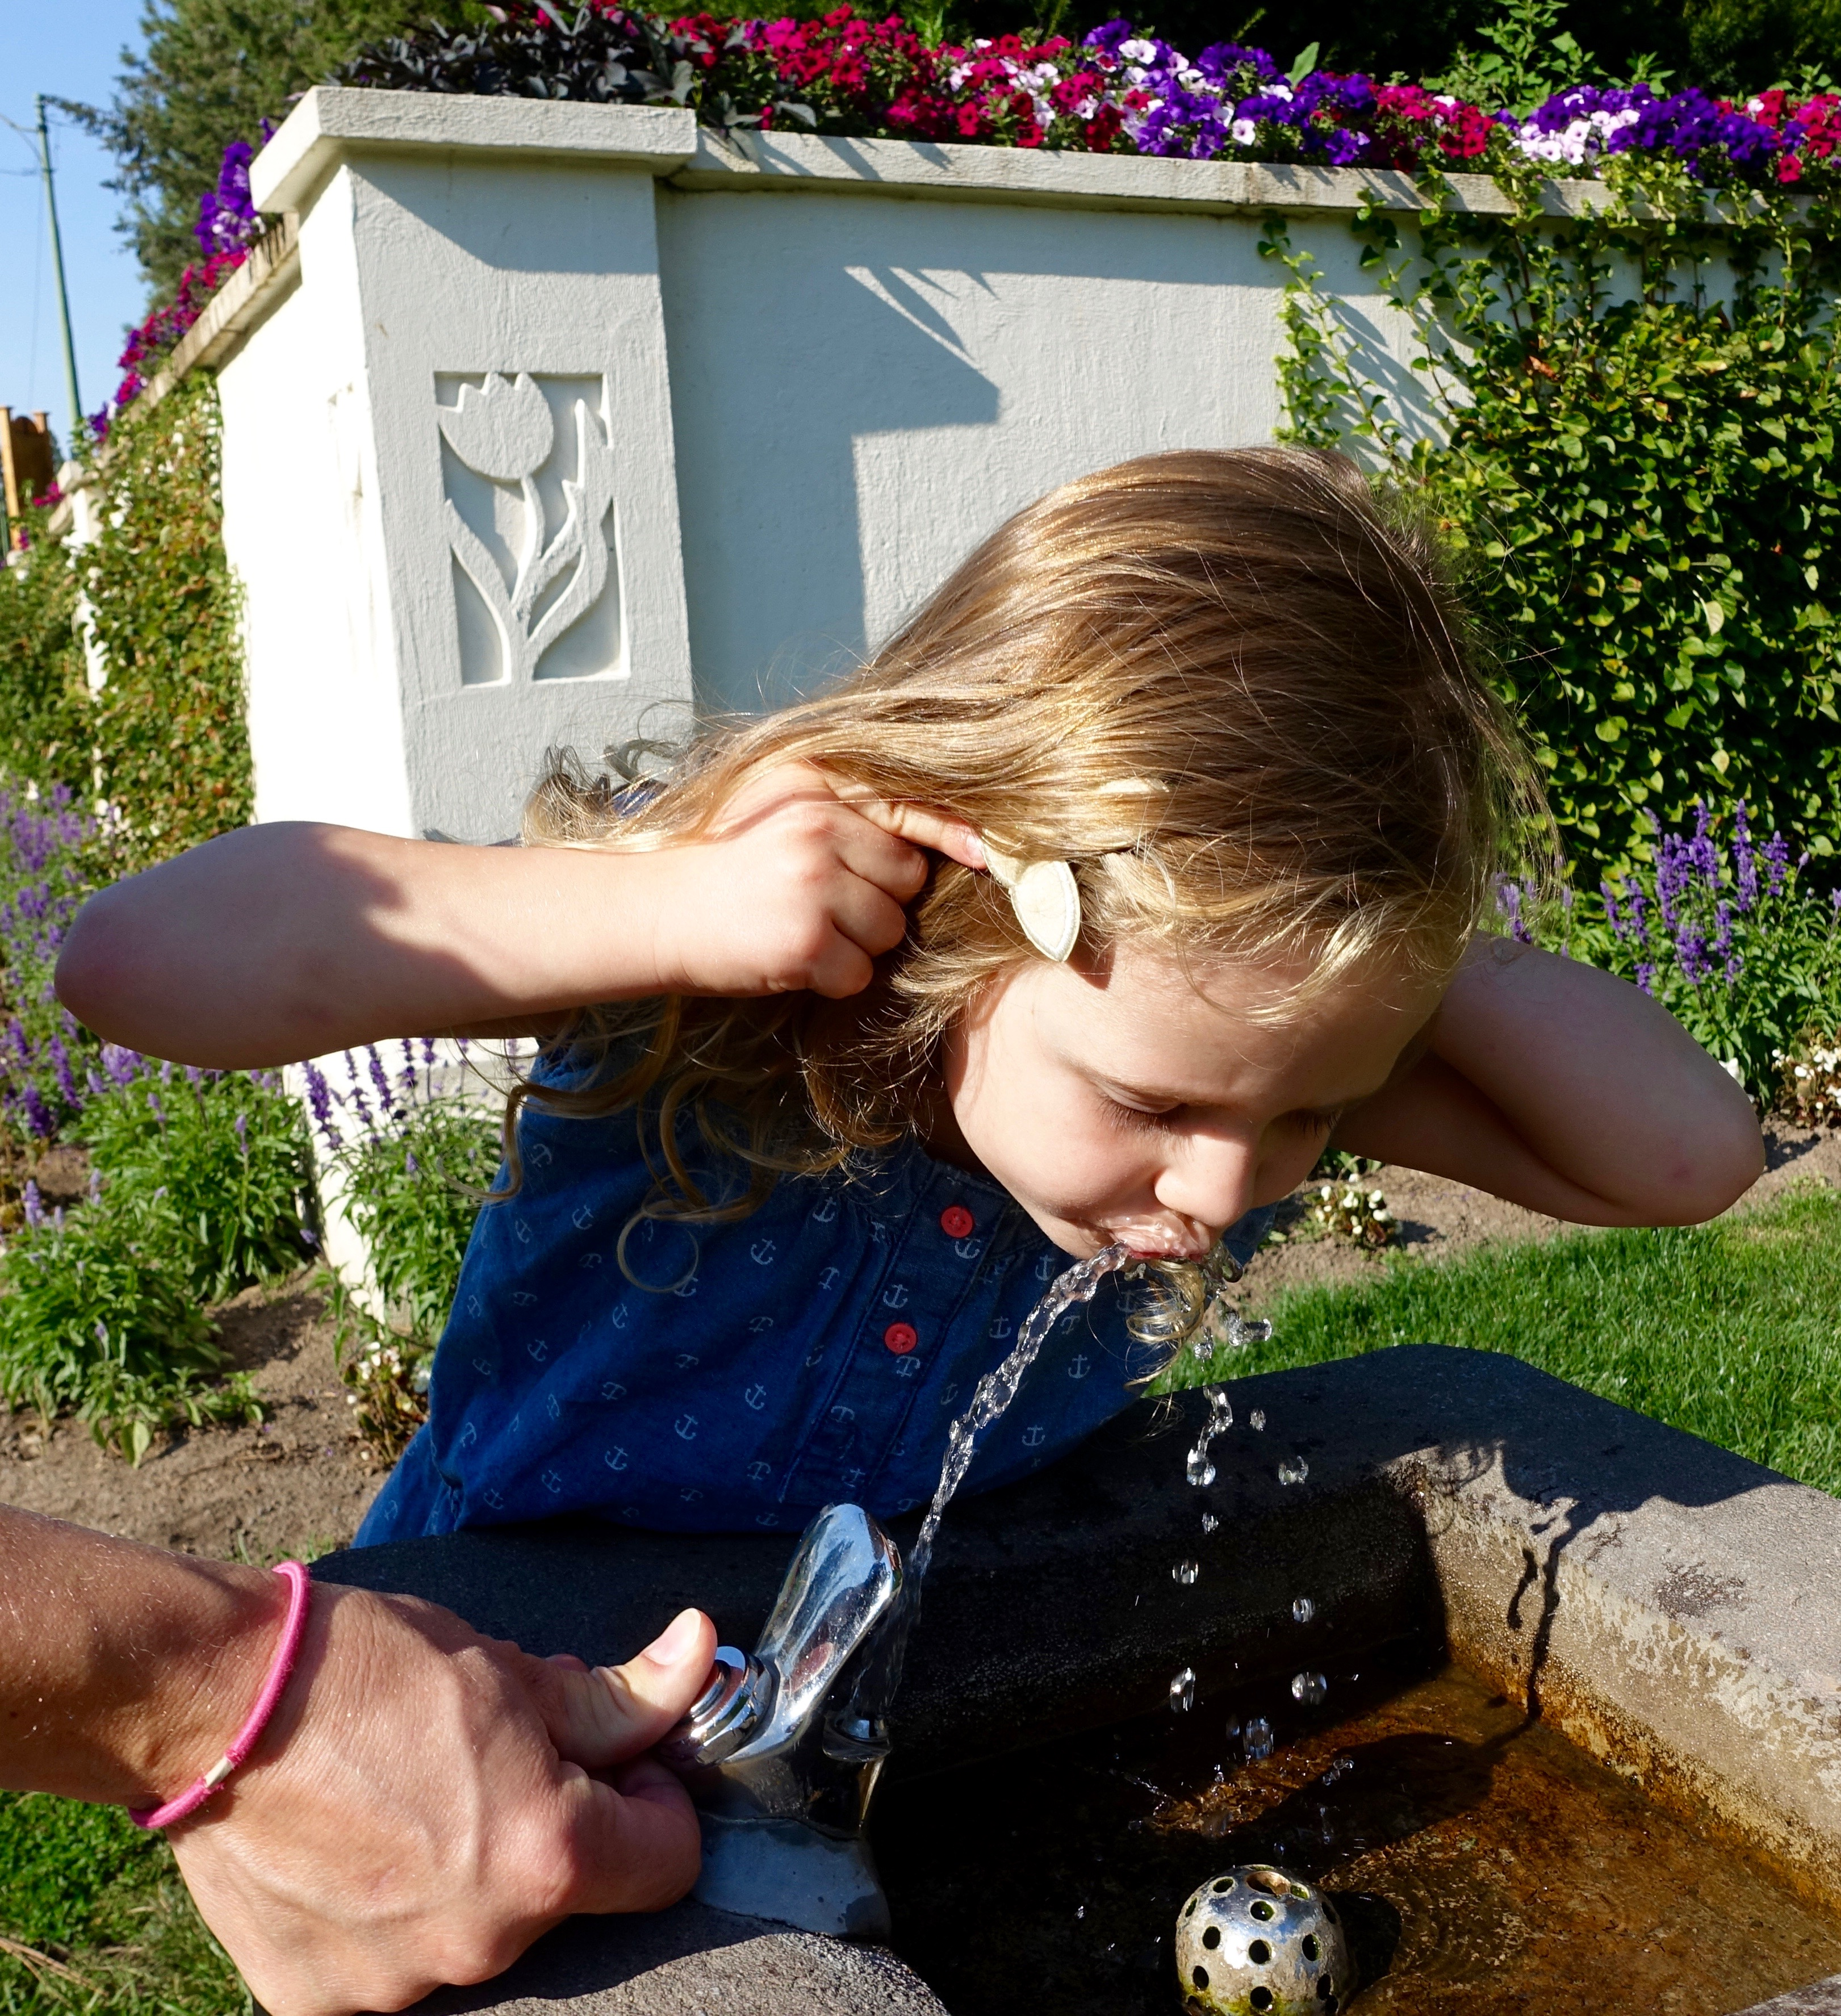 Little girl at drinking fountain